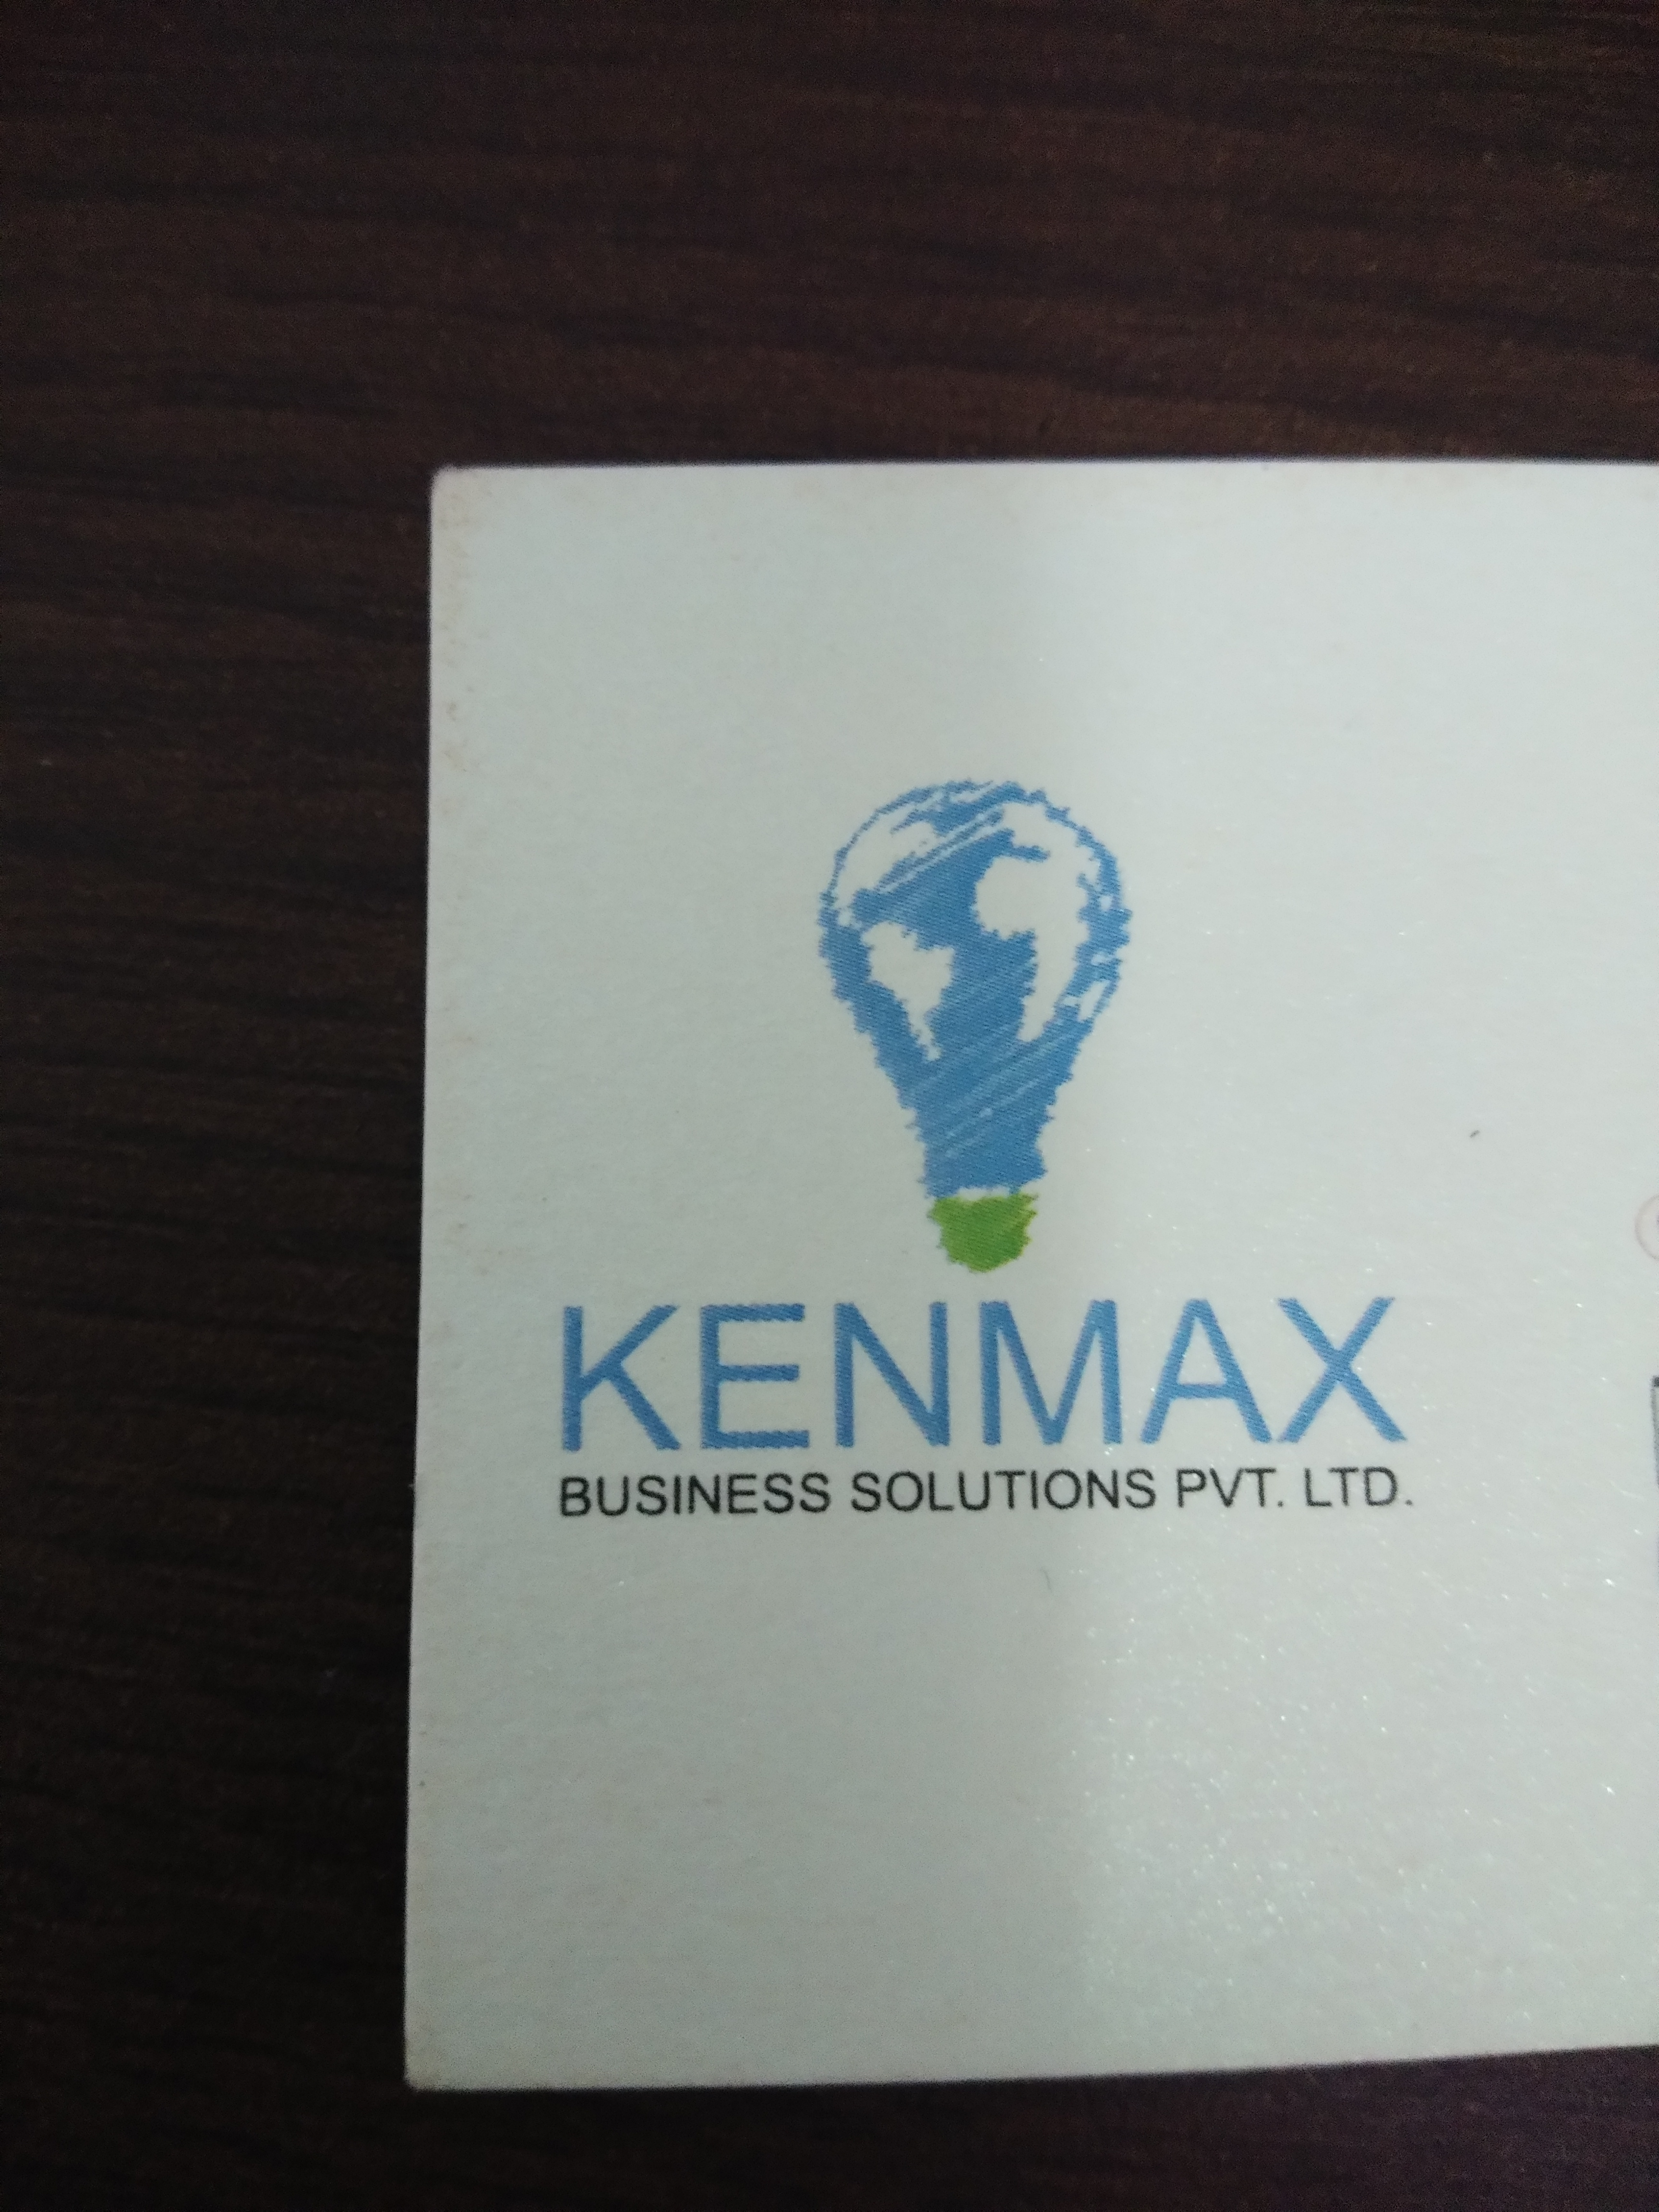 Kenmax Business Solutions Pvt Ltd in Sector 63, Noida-201301